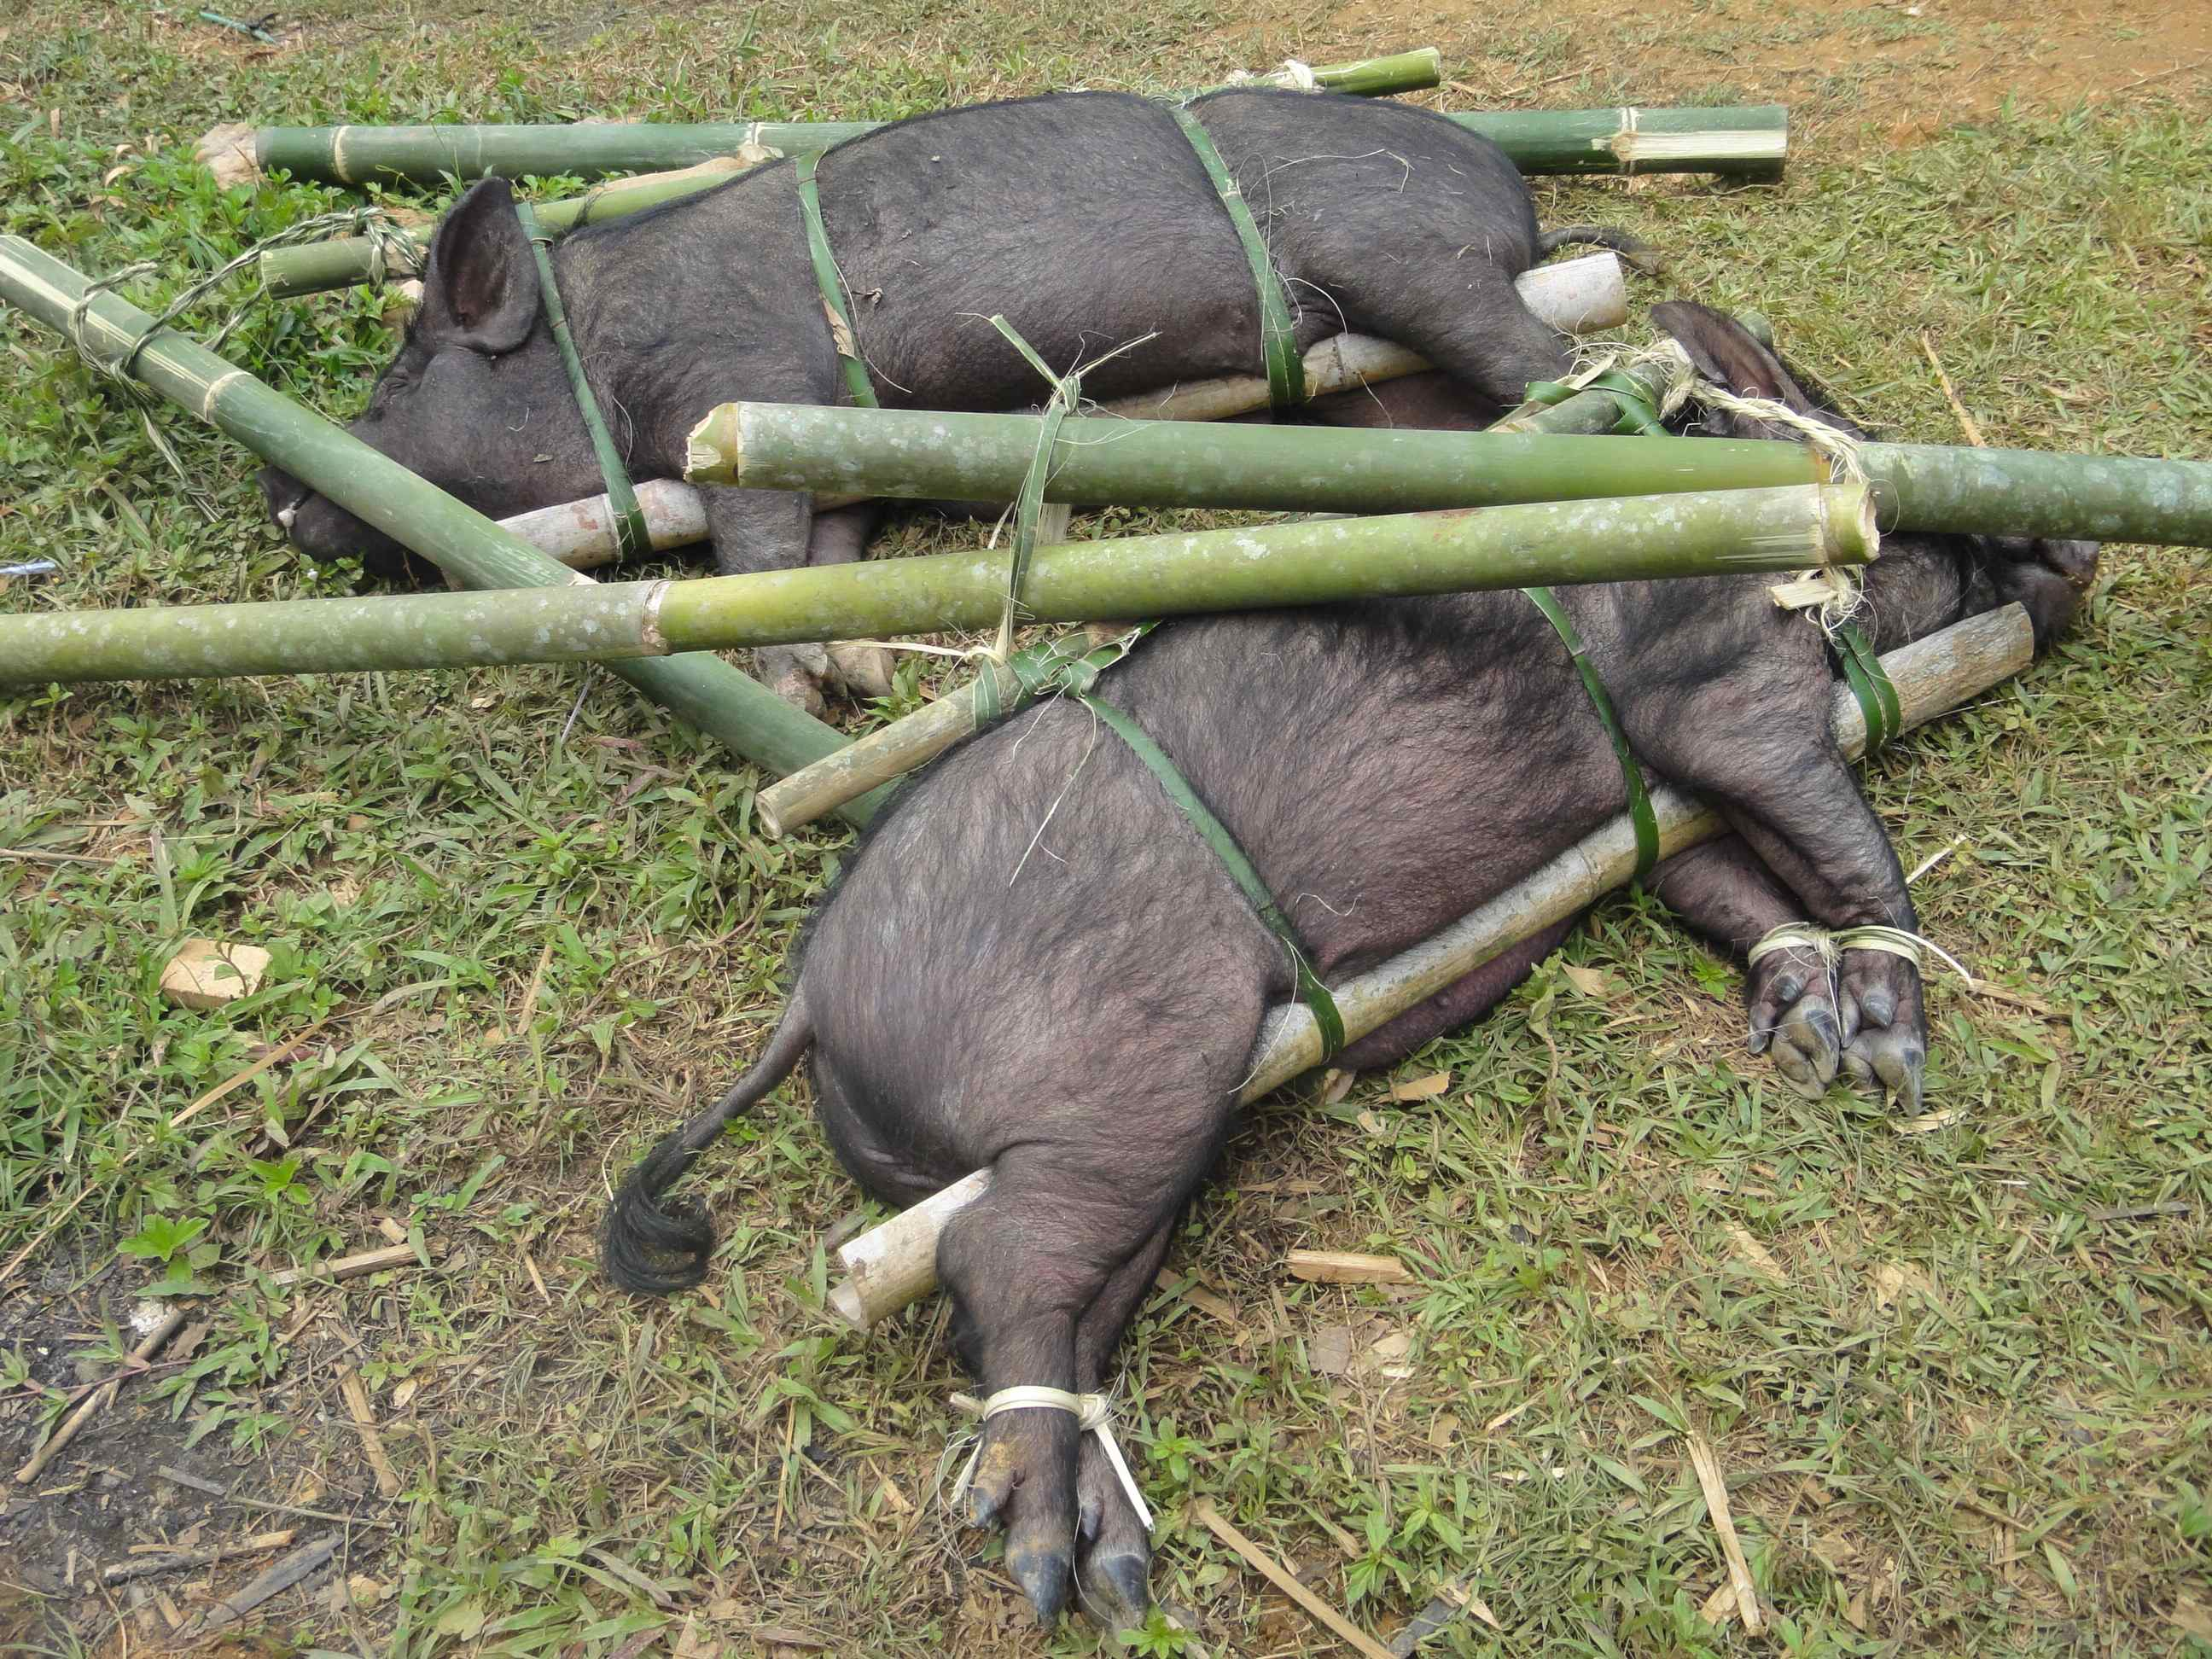 Pigs on bamboo carrying poles dumped on the grass. Torajan funeral, Tana Toraja, Sulawesi, Indonesia.